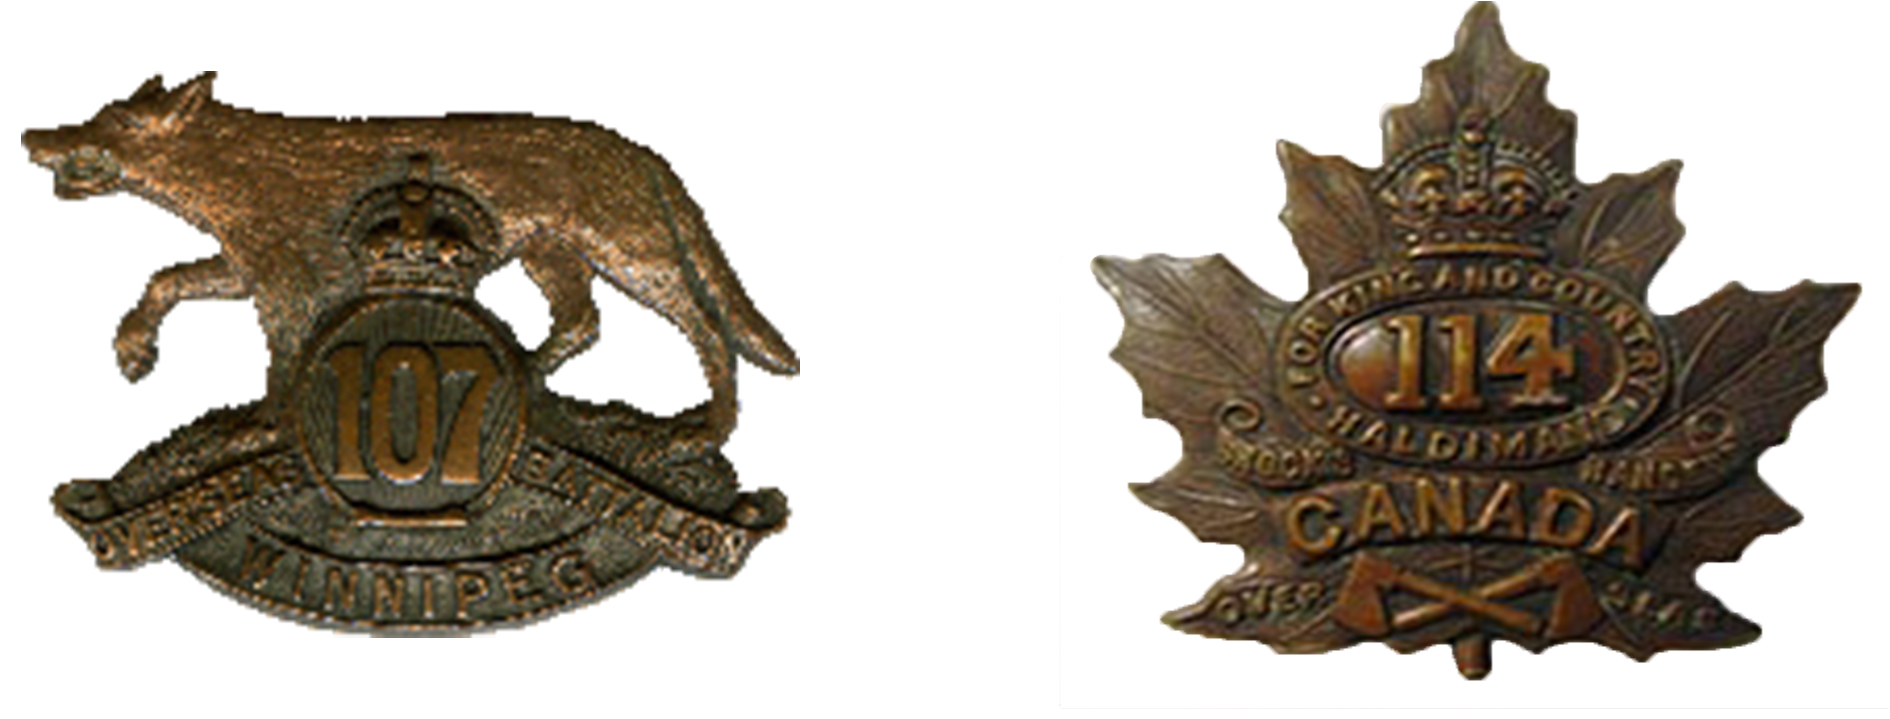 107th Timber Wolf (left) and 114th Brock's Rangers (right) Battalions badges, CEF